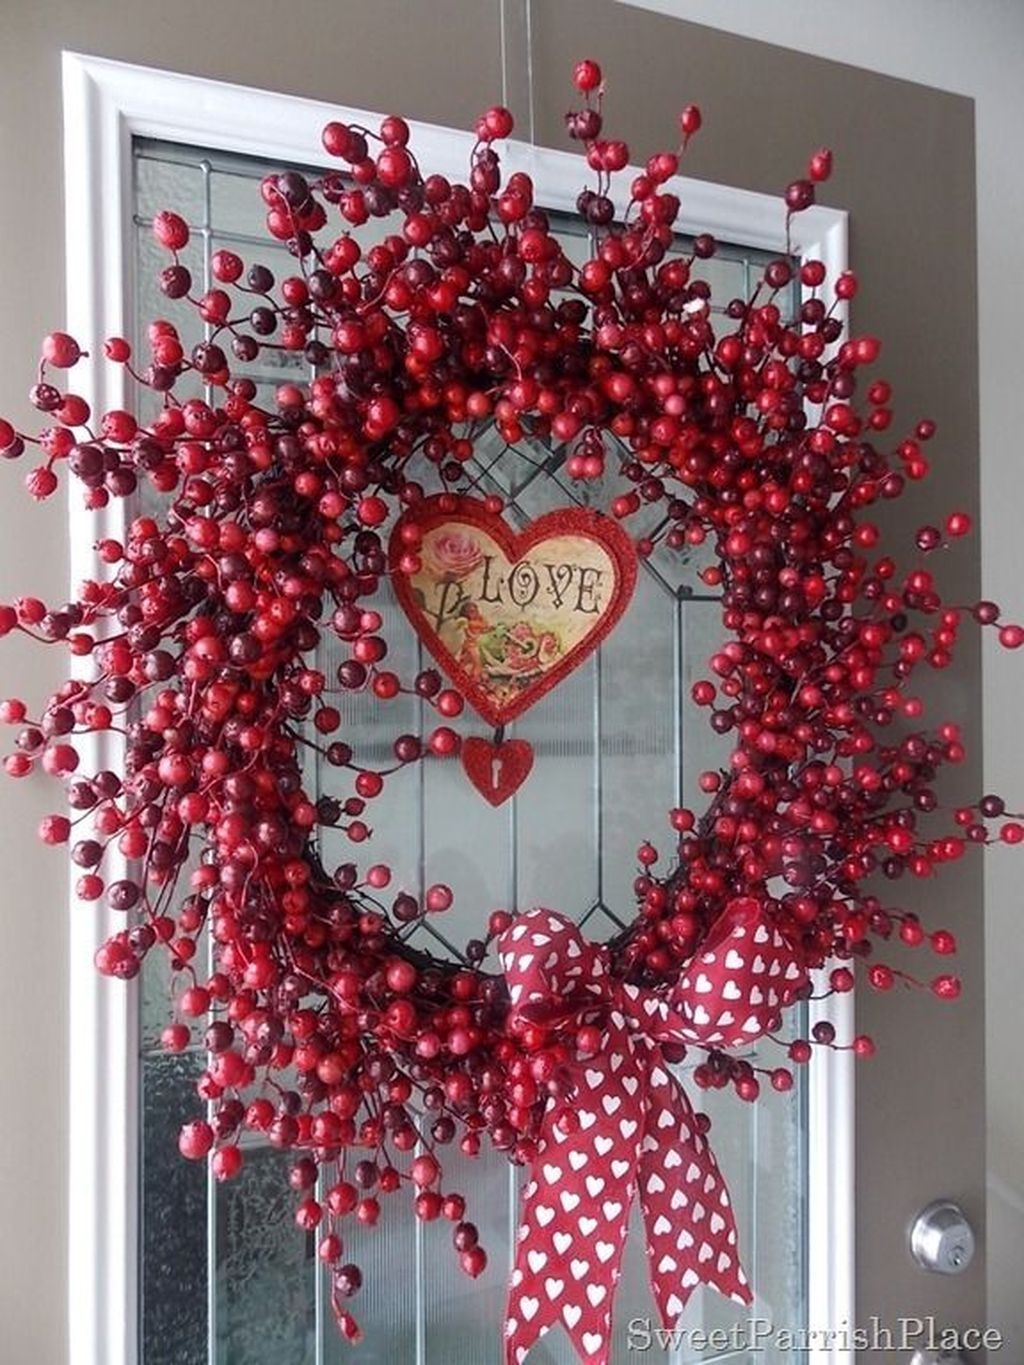 The Best Valentine Door Decorations 18